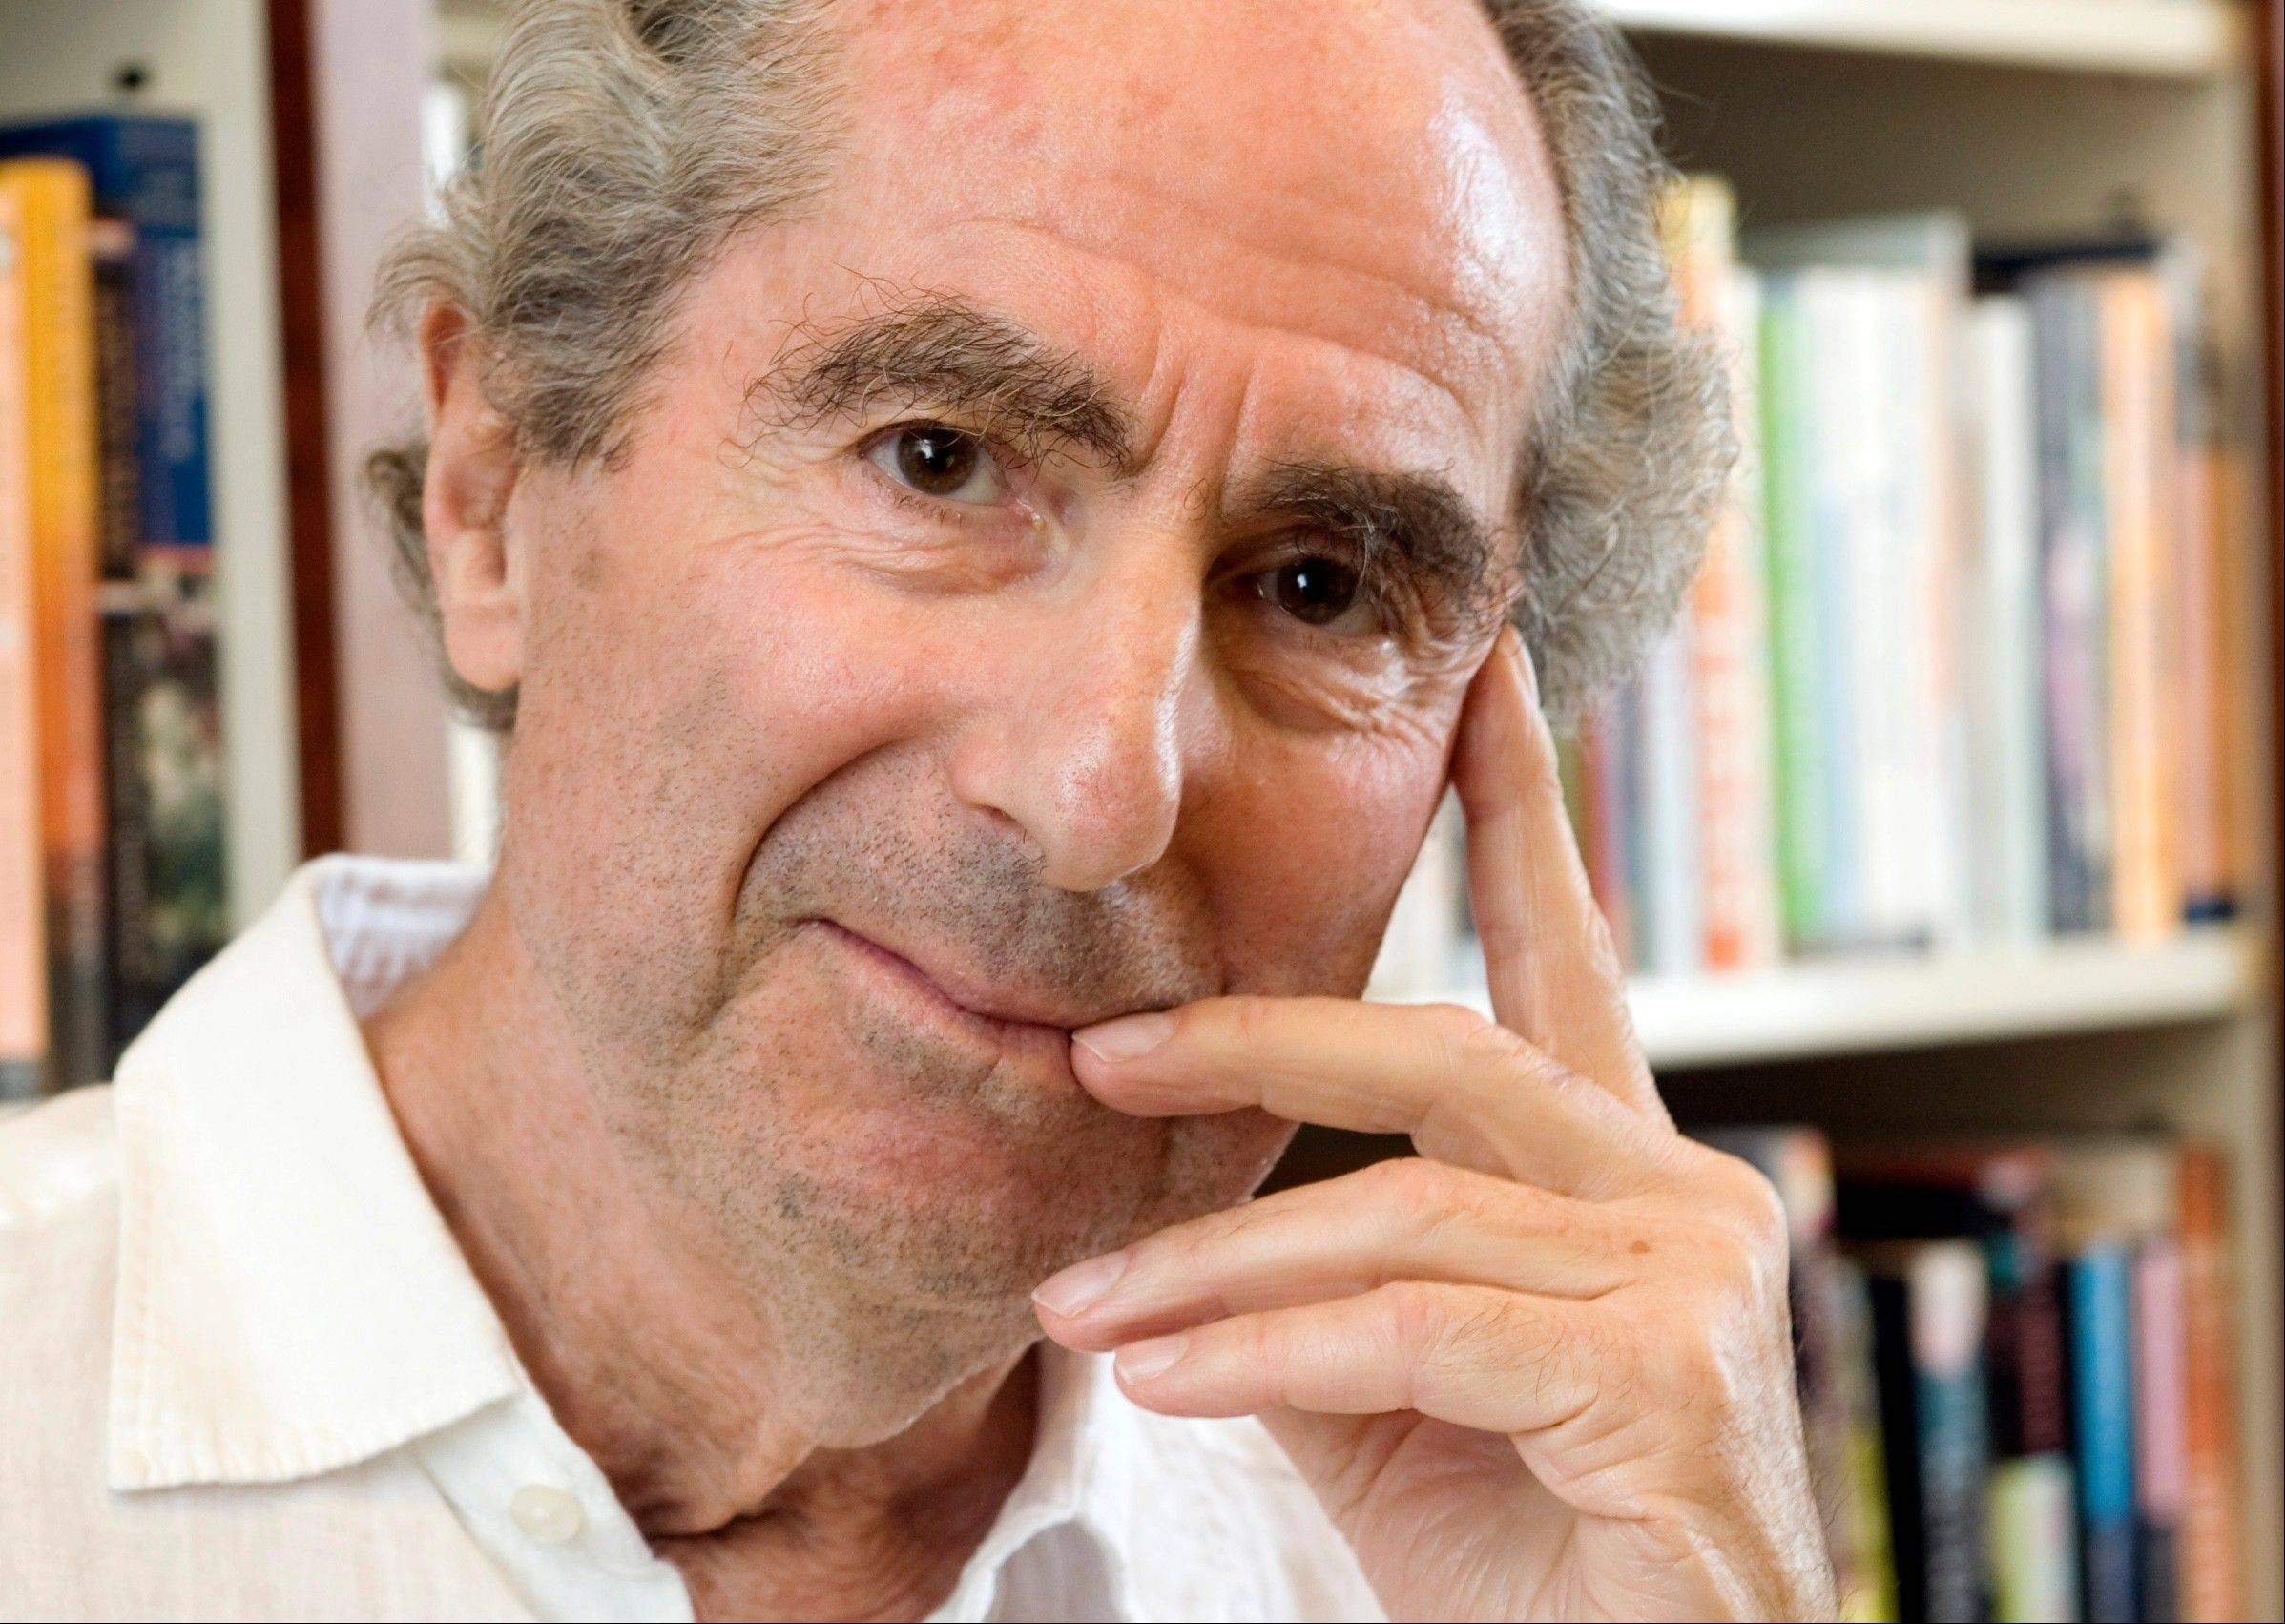 Author Philip Roth received the PEN/Allen Foundation Literary Service Award. He was cited for such novels as �Sabbath�s Theater� and �American Pastoral,� but also for his advocacy in the 1970s and 1980s for writers in Czechoslovakia and other Eastern bloc countries during the Cold War.